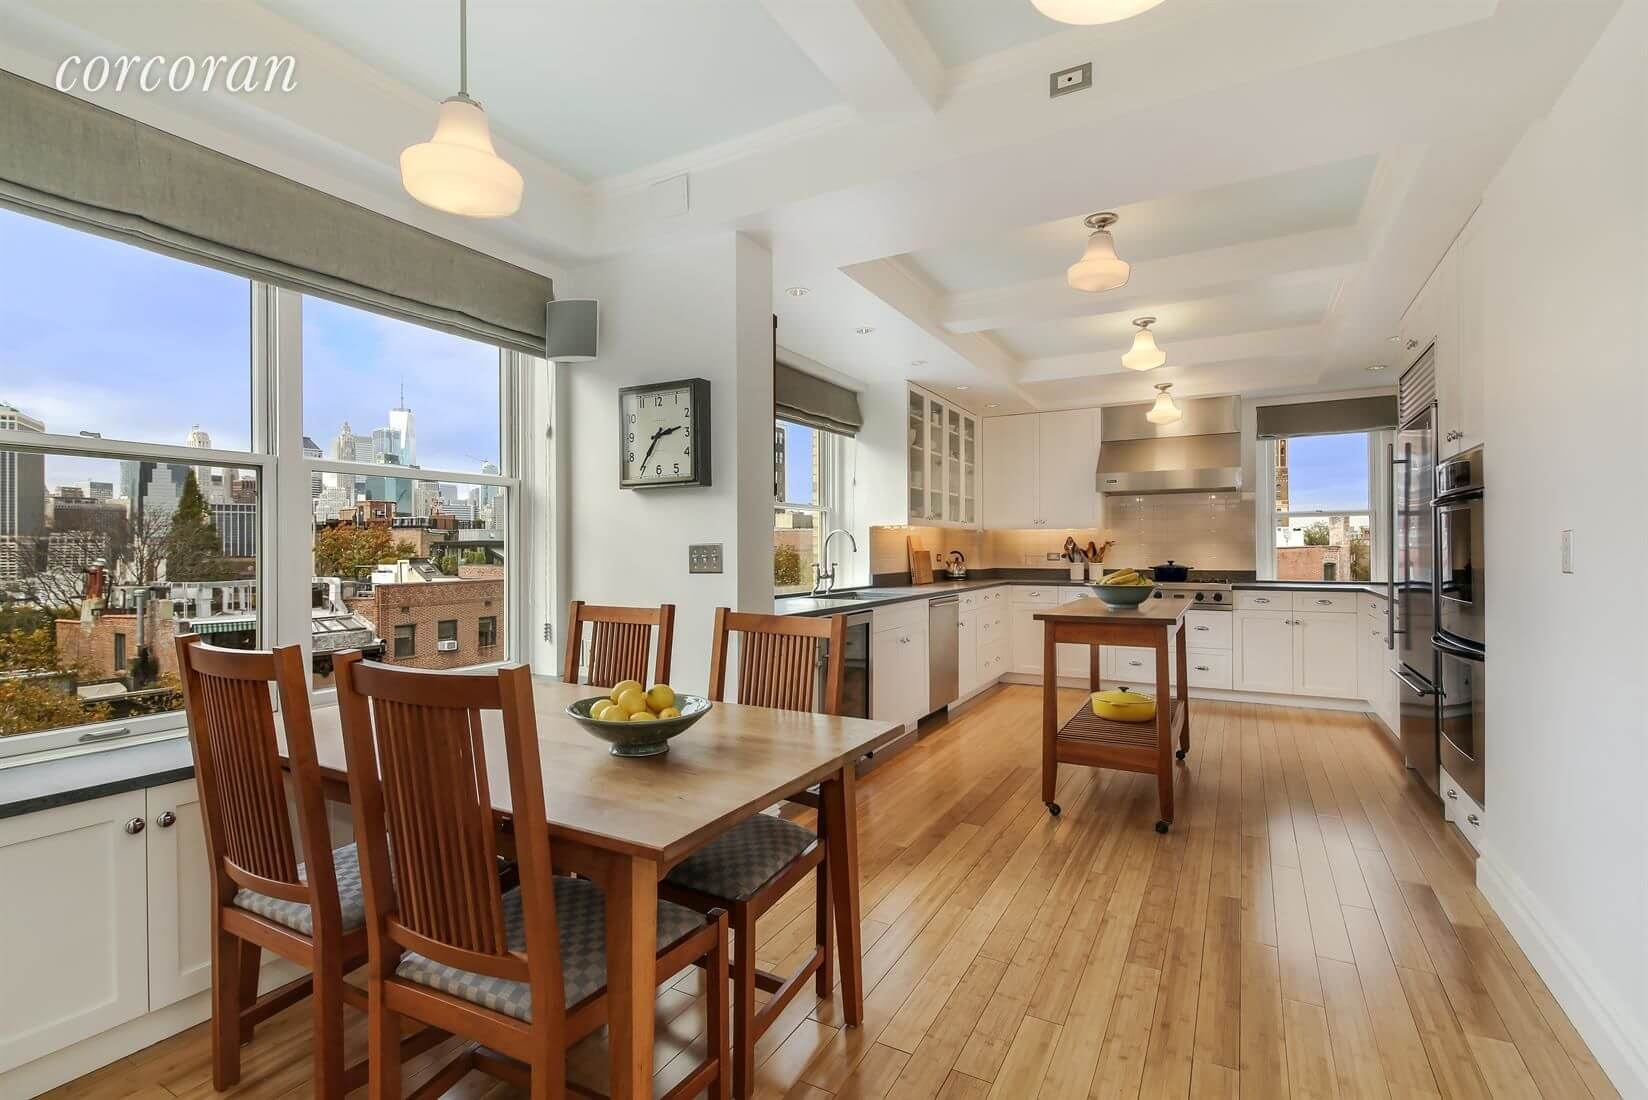 Brooklyn Apartments for Sale in Brooklyn Heights at 35 Pierrepont Street